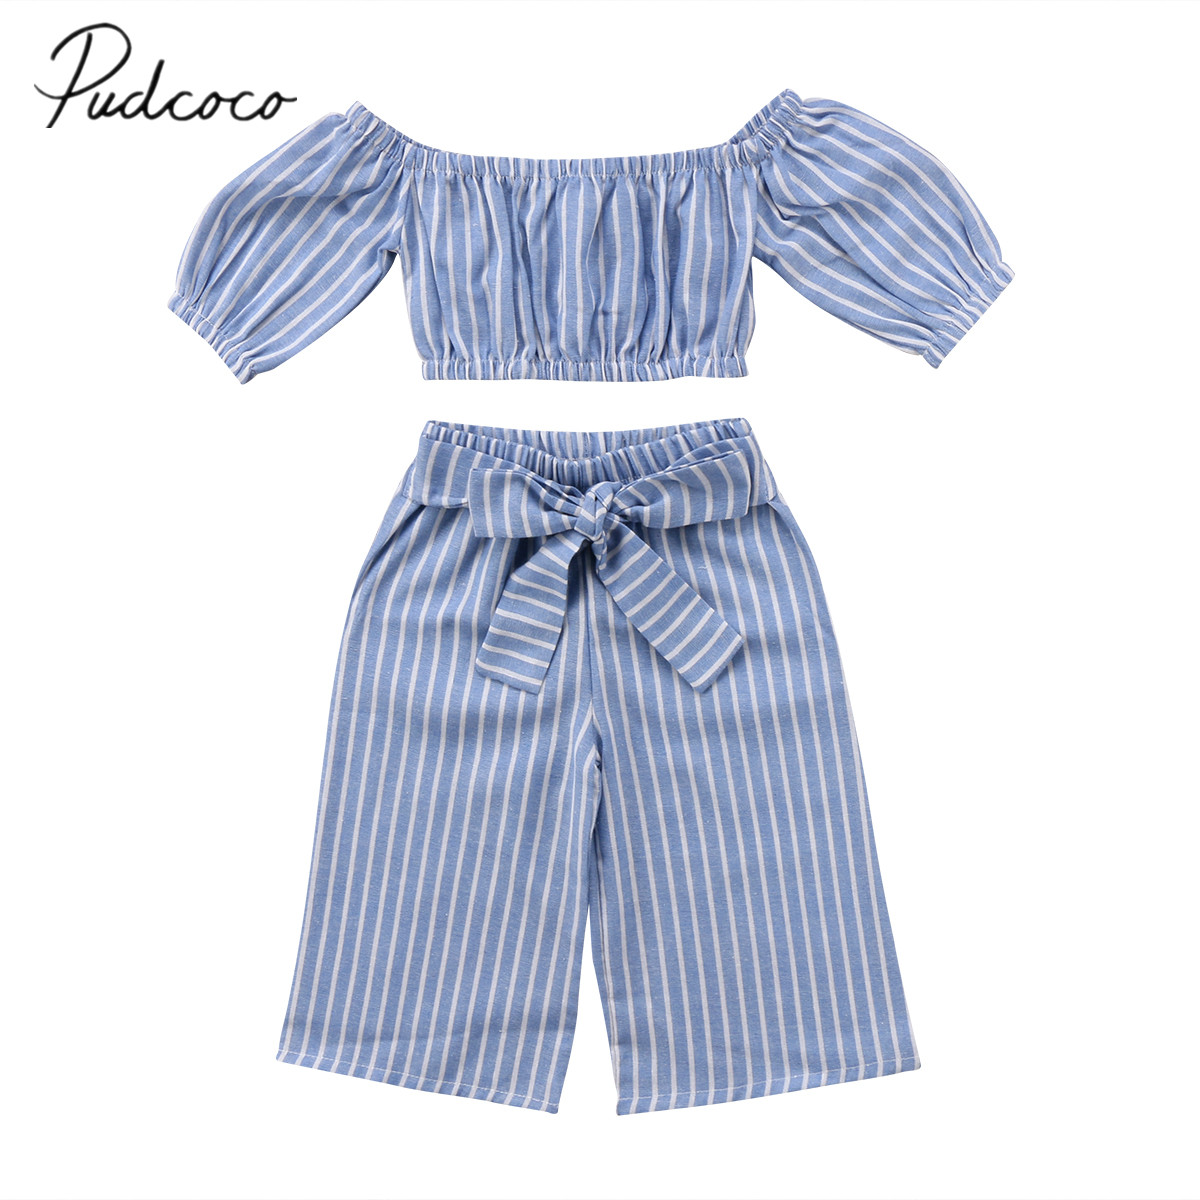 2018 Brand New Toddler Infant Baby Kid Girl Off-shoulder Top Tshirt Cotton Casual Stripe Bowknot Pants Outfits 2Pcs Set Fashion new mens colors short sleeve cotton tshirt henry kissinger quote absence